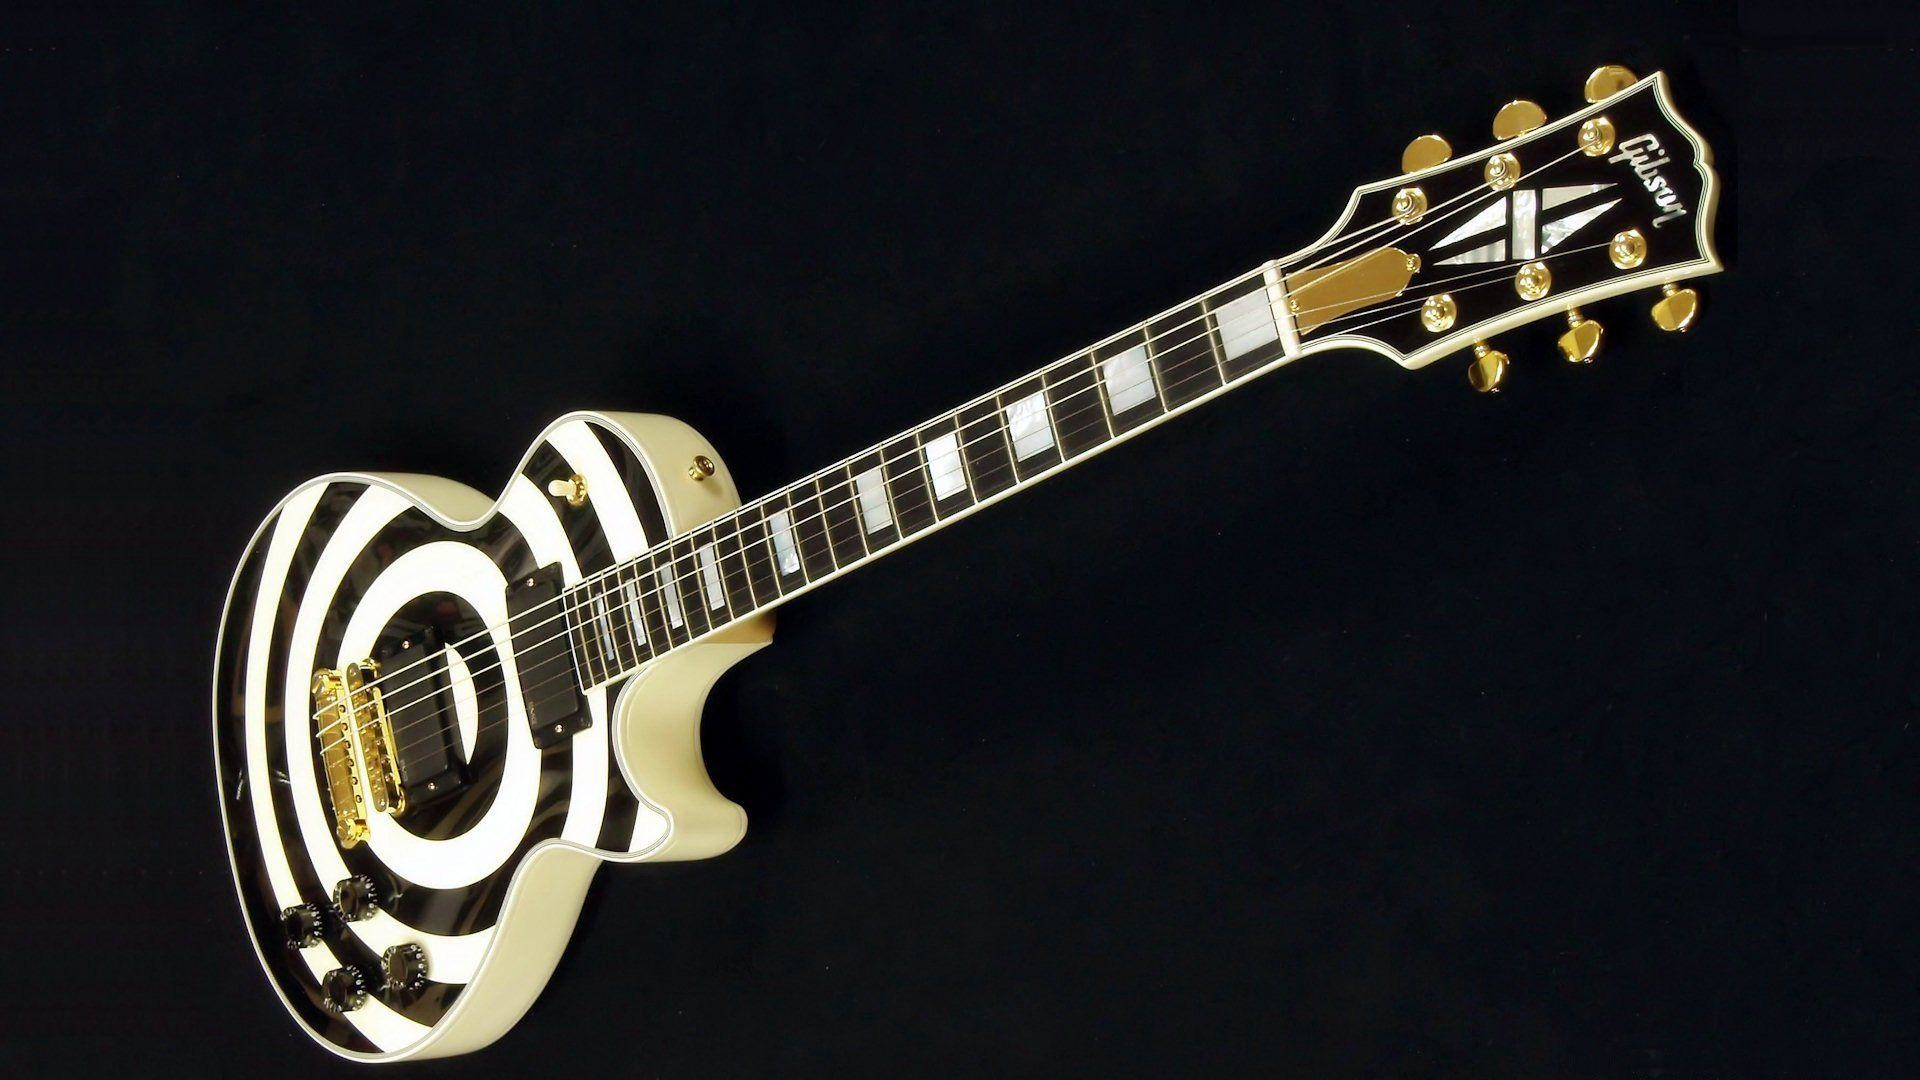 Wallpapers For > Gibson Guitar Iphone Wallpaper